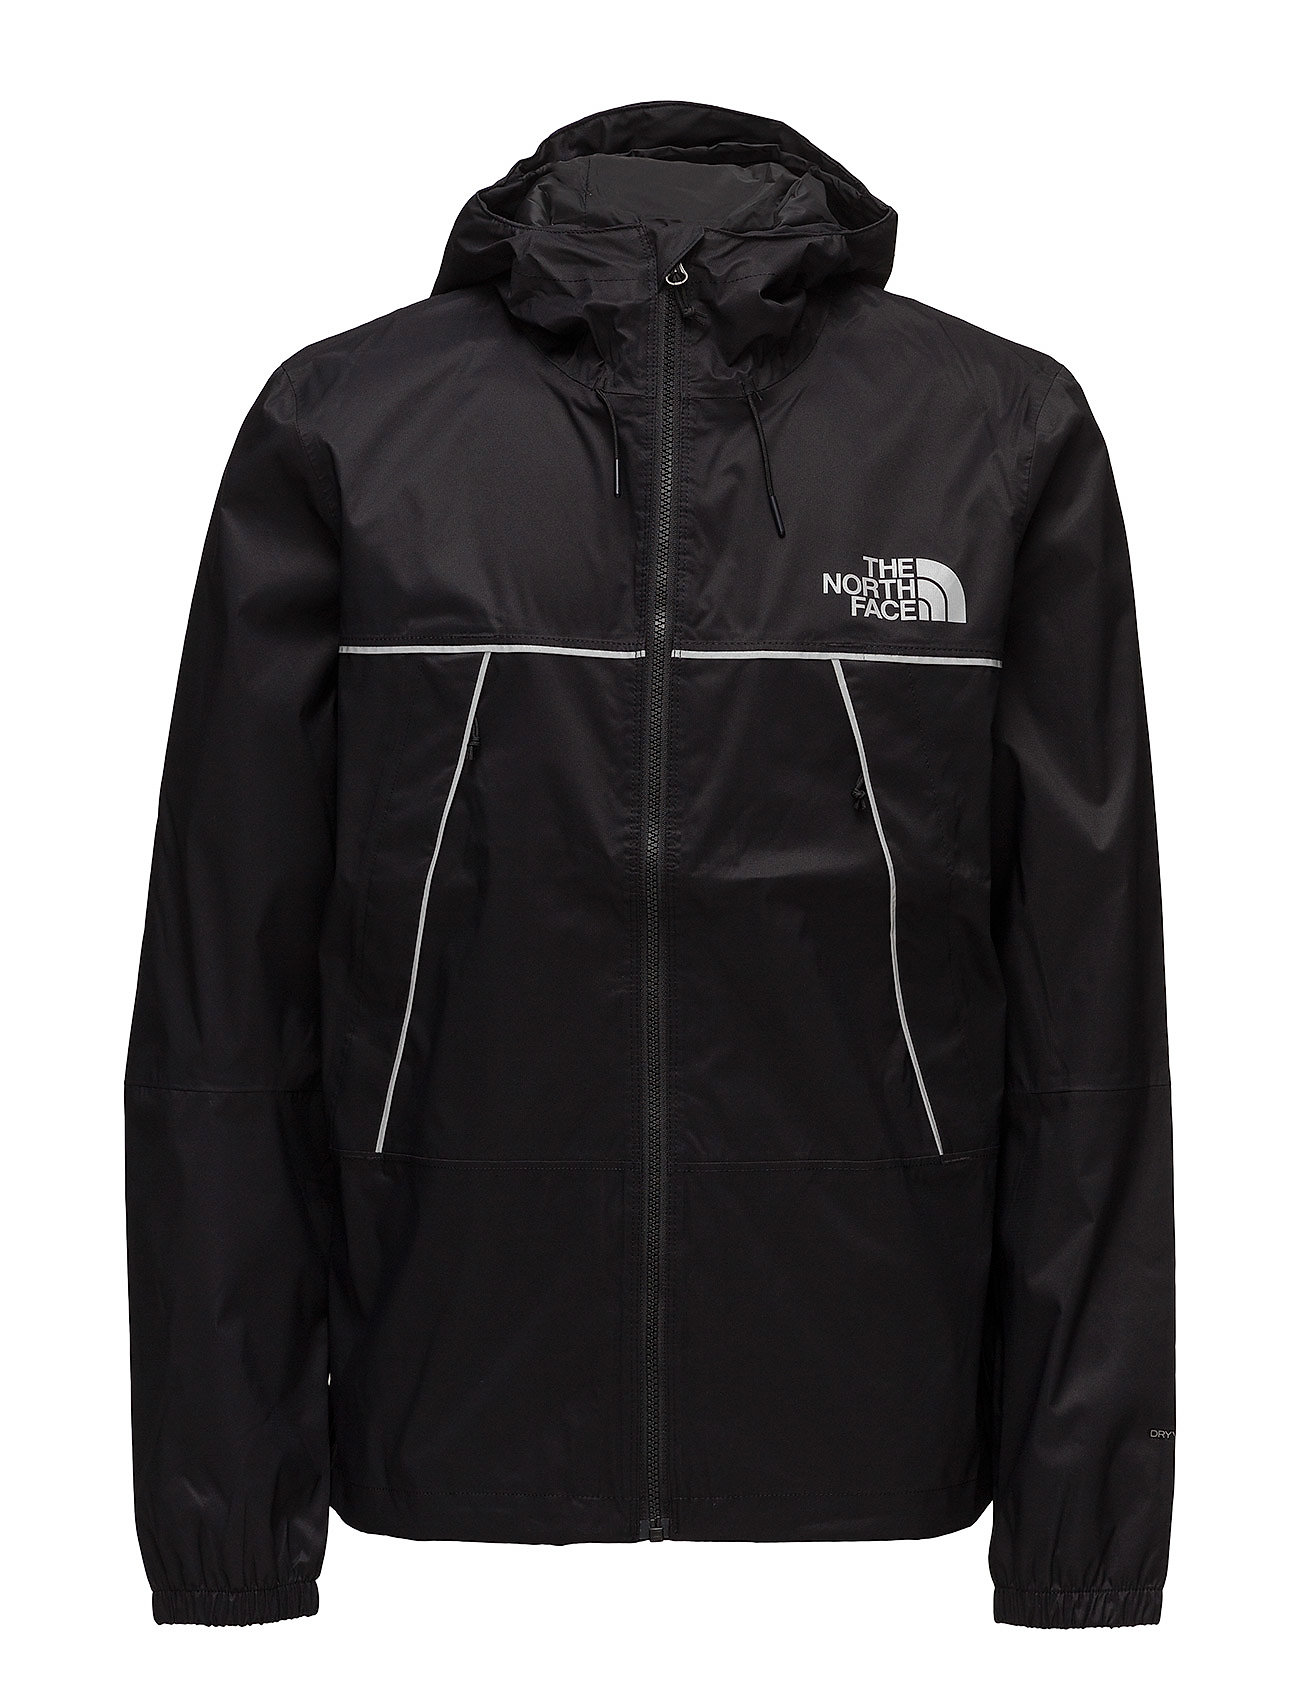 the north face M 1990 mnt q jkt på boozt.com dk